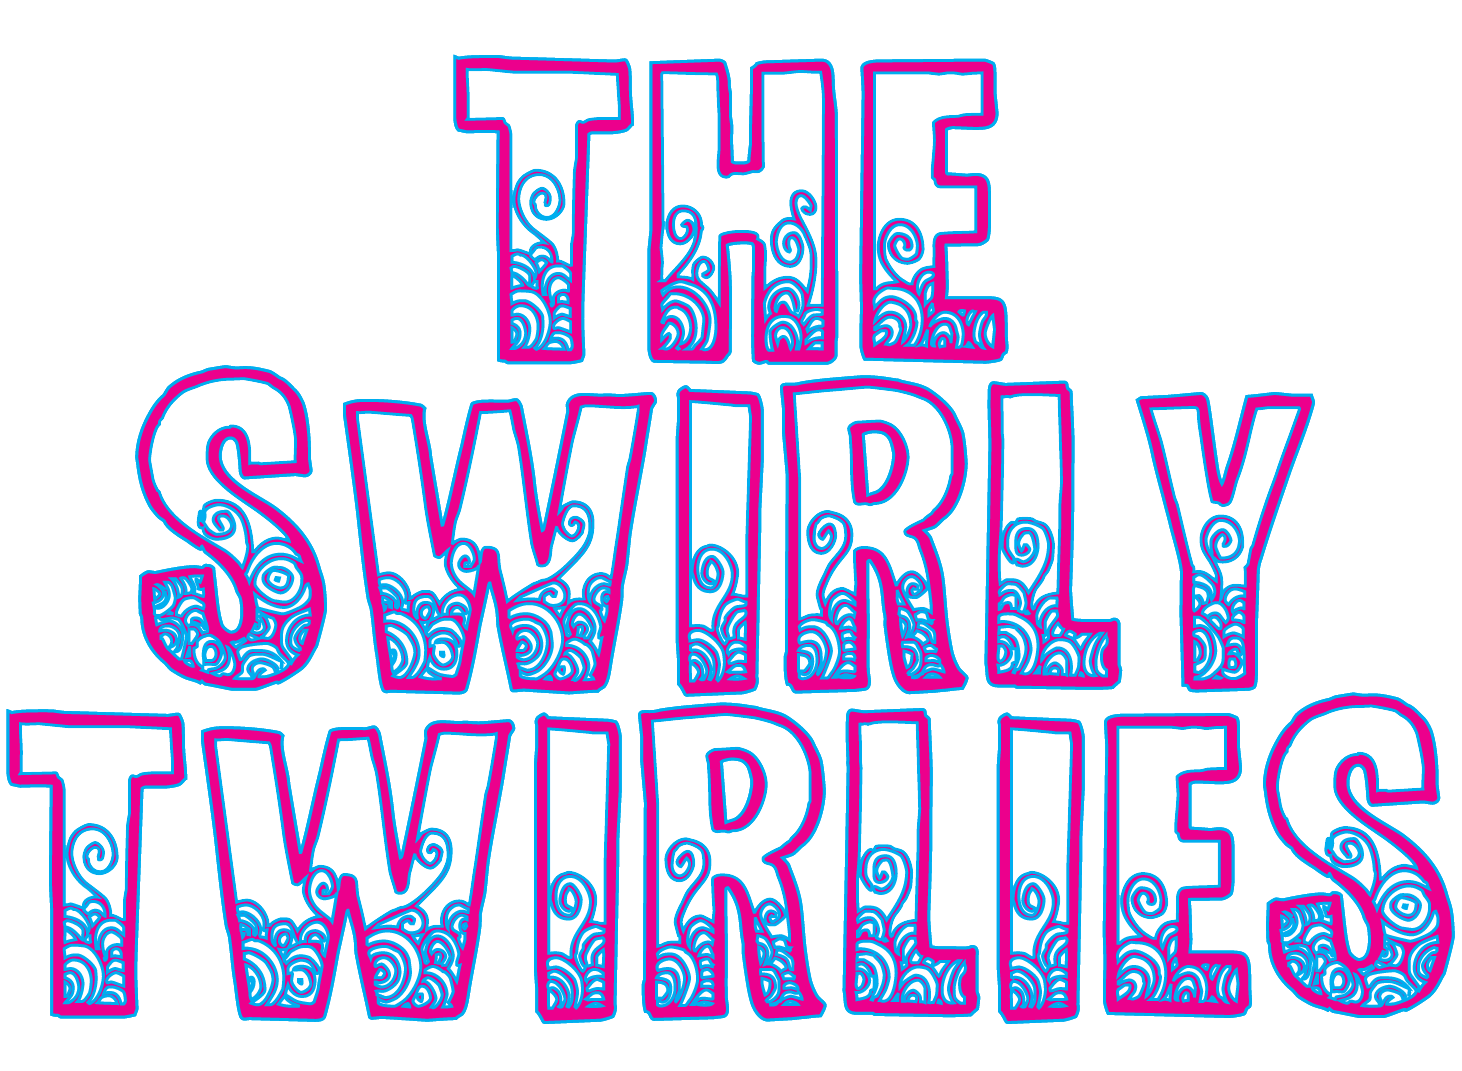 The Swirly Twirlies